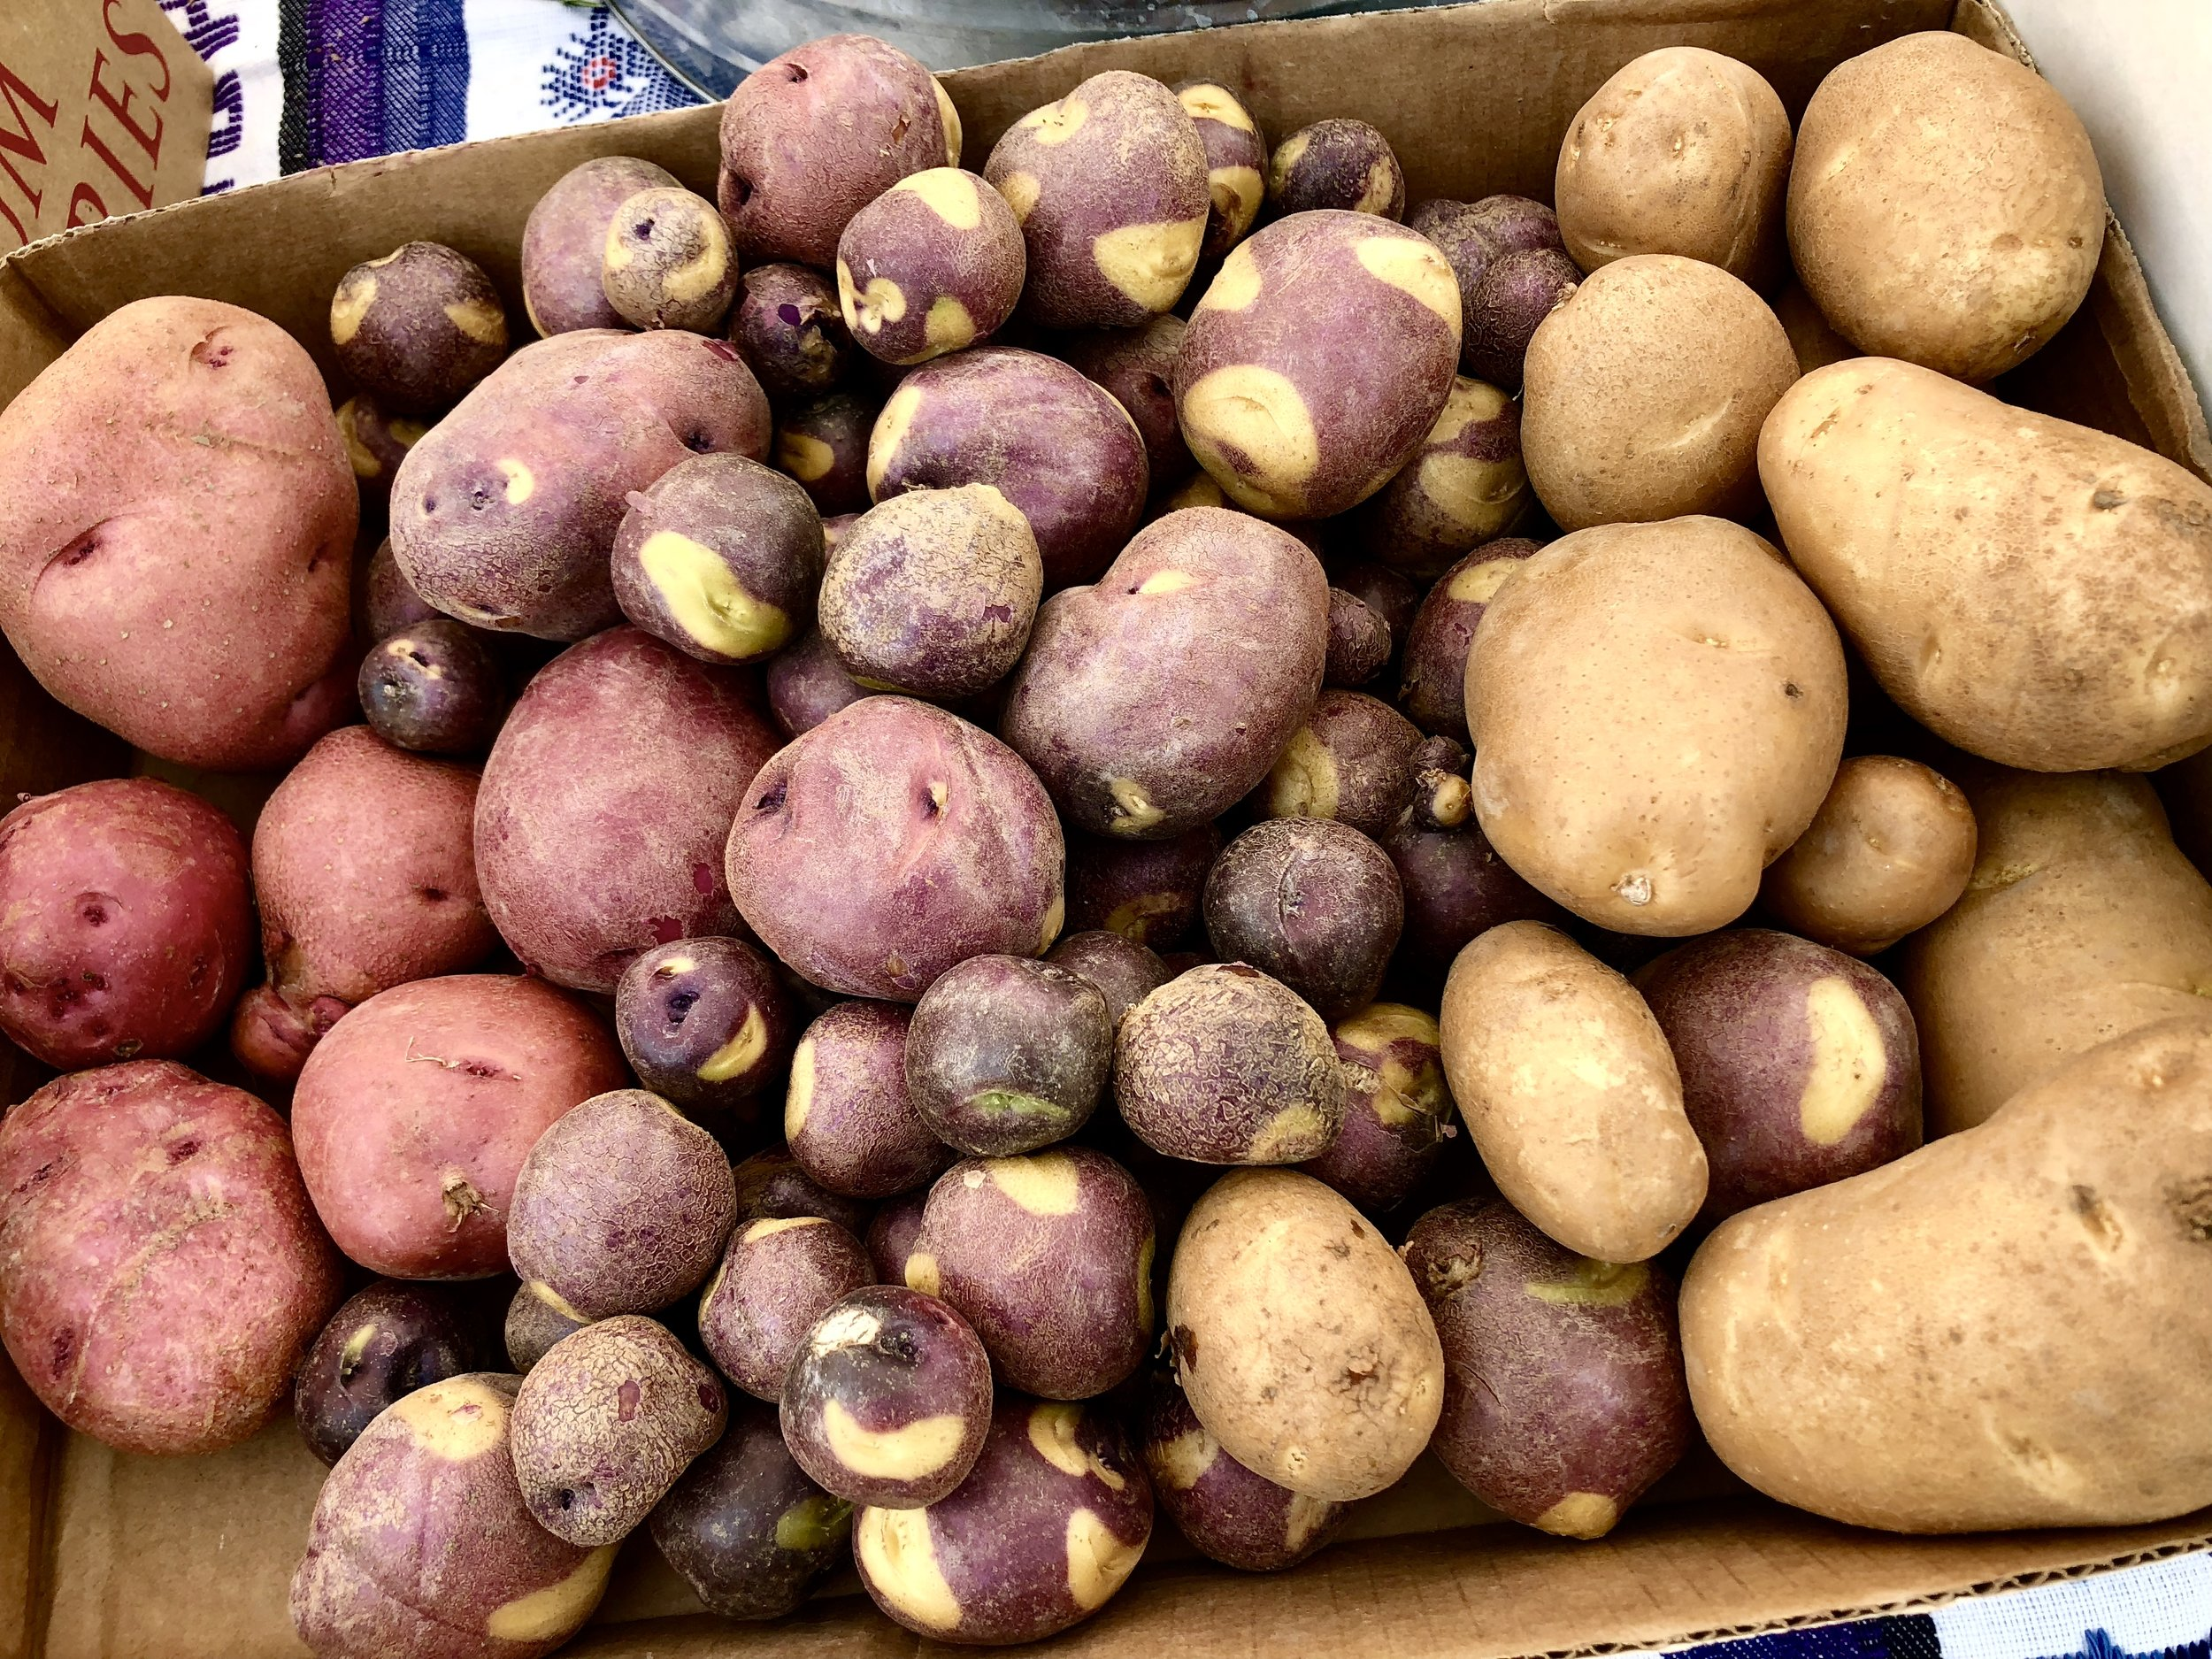 Fingerling potatoes! They're so pretty.